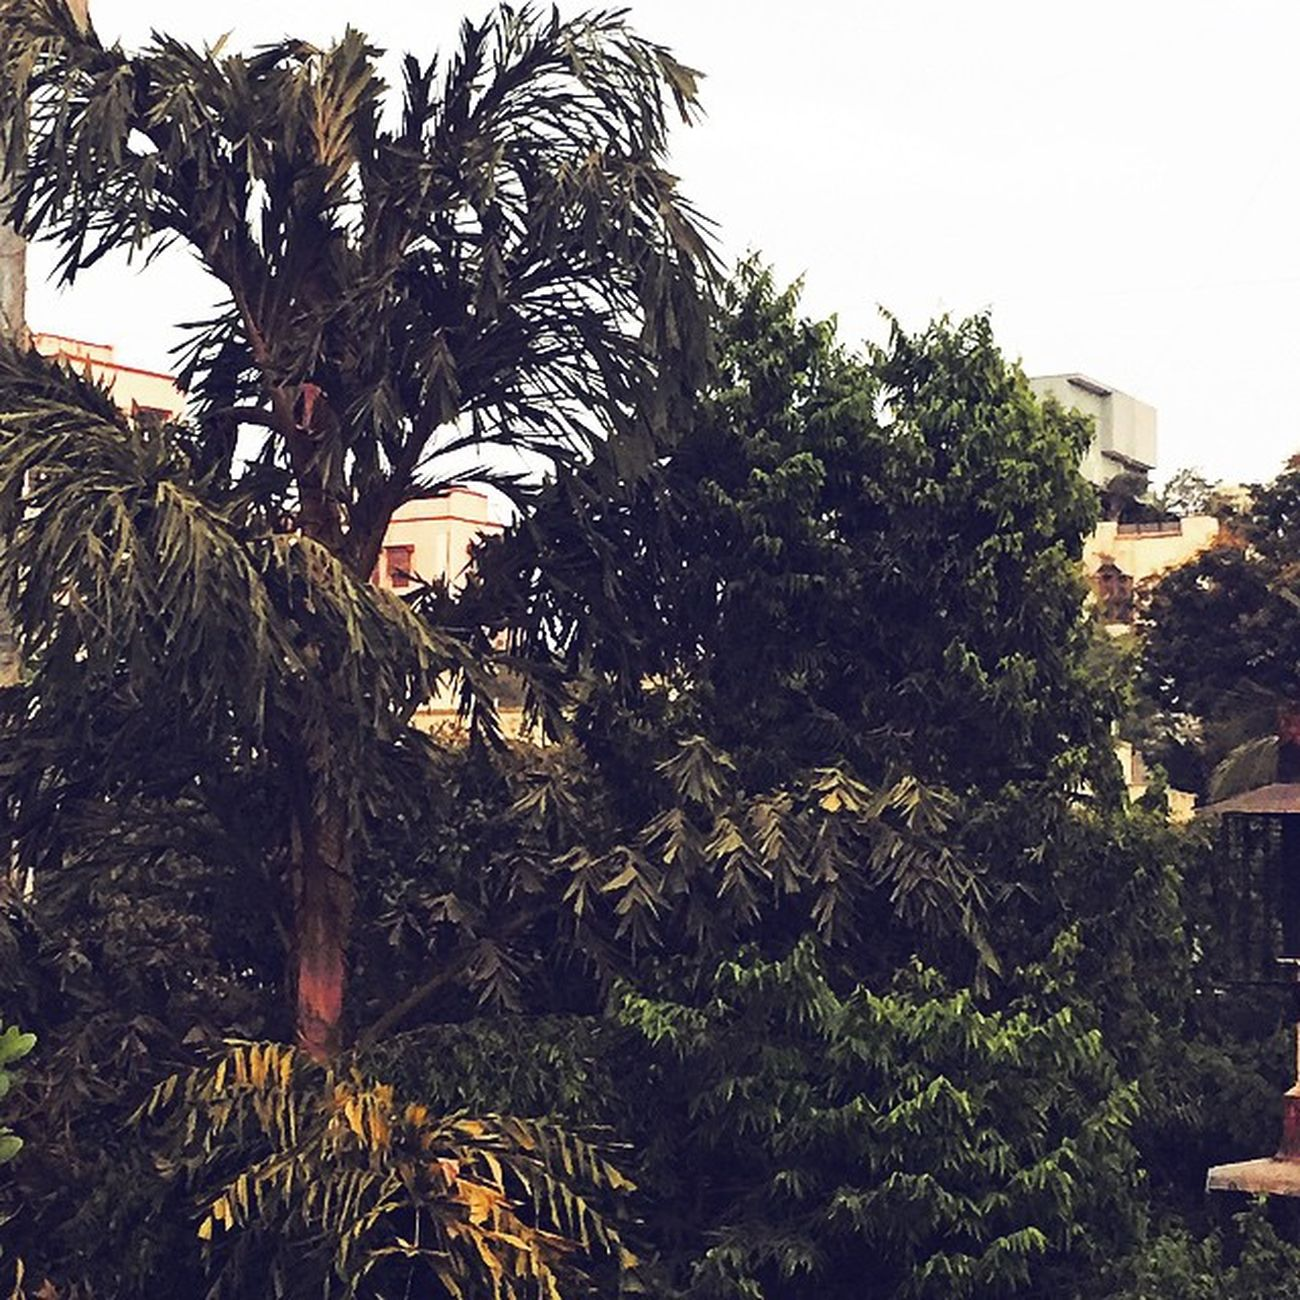 Mausam is getting awesome !!! Gogreen Sexyweather Bigtrees Relief MumbaiWeather Nofilter Instapic